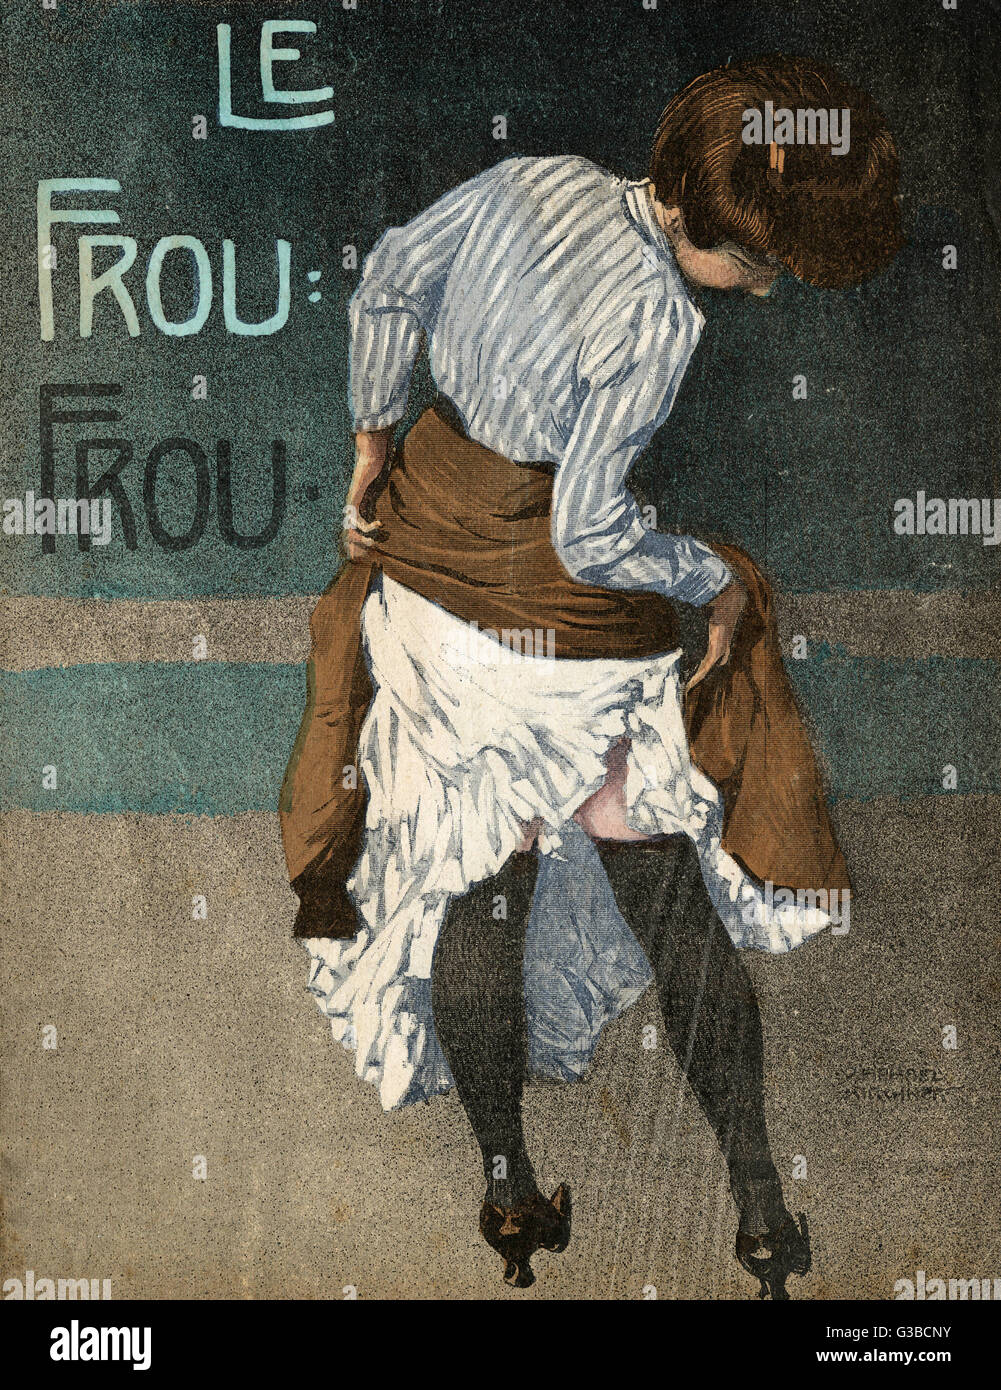 A woman stops to check her  petticoats, or to see if she's  laddered her stockings.       Date: 1908 - Stock Image